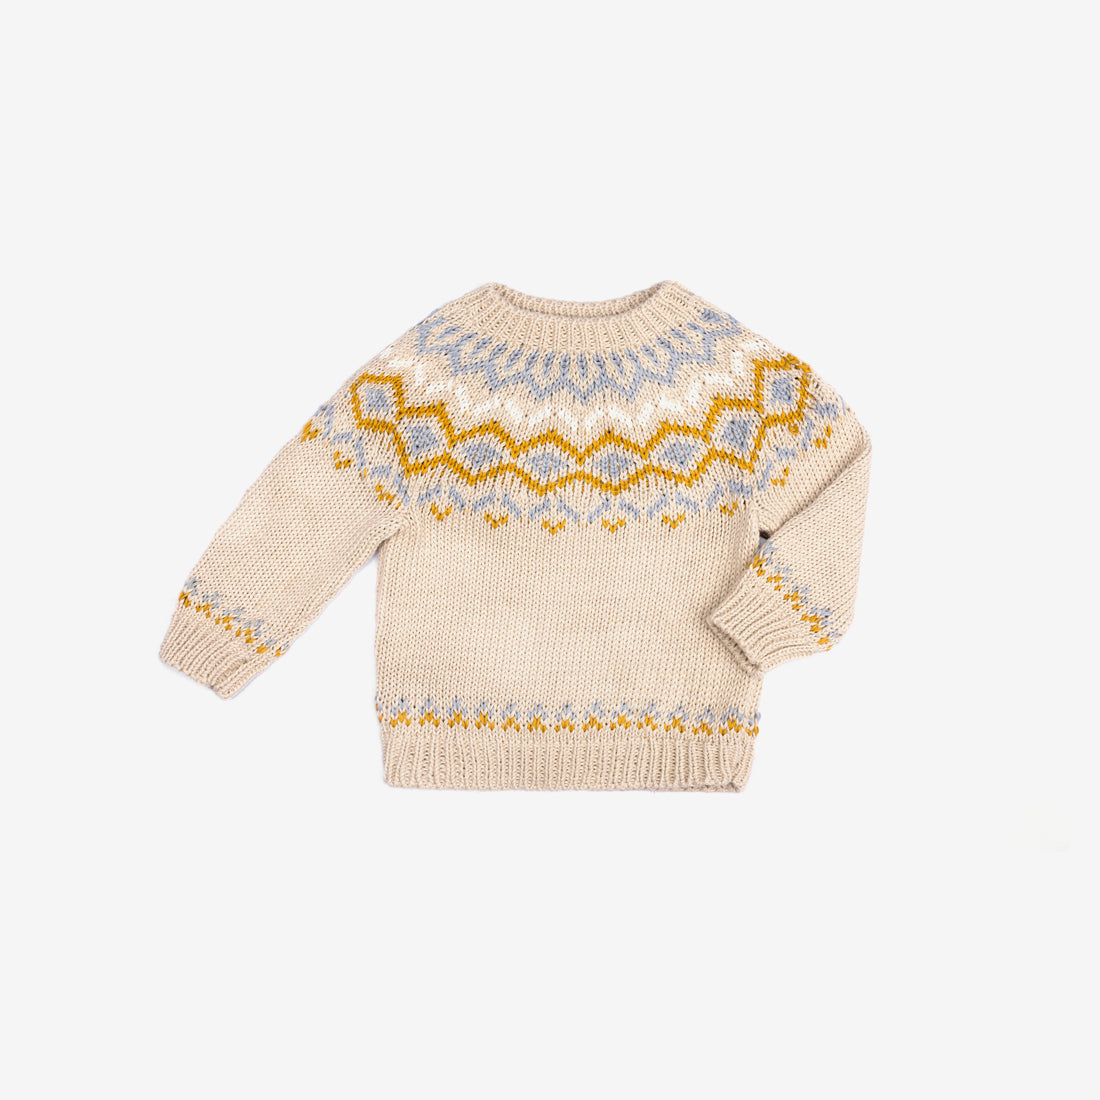 Sebastian Pima Cotton Knit Fair Isle Sweater